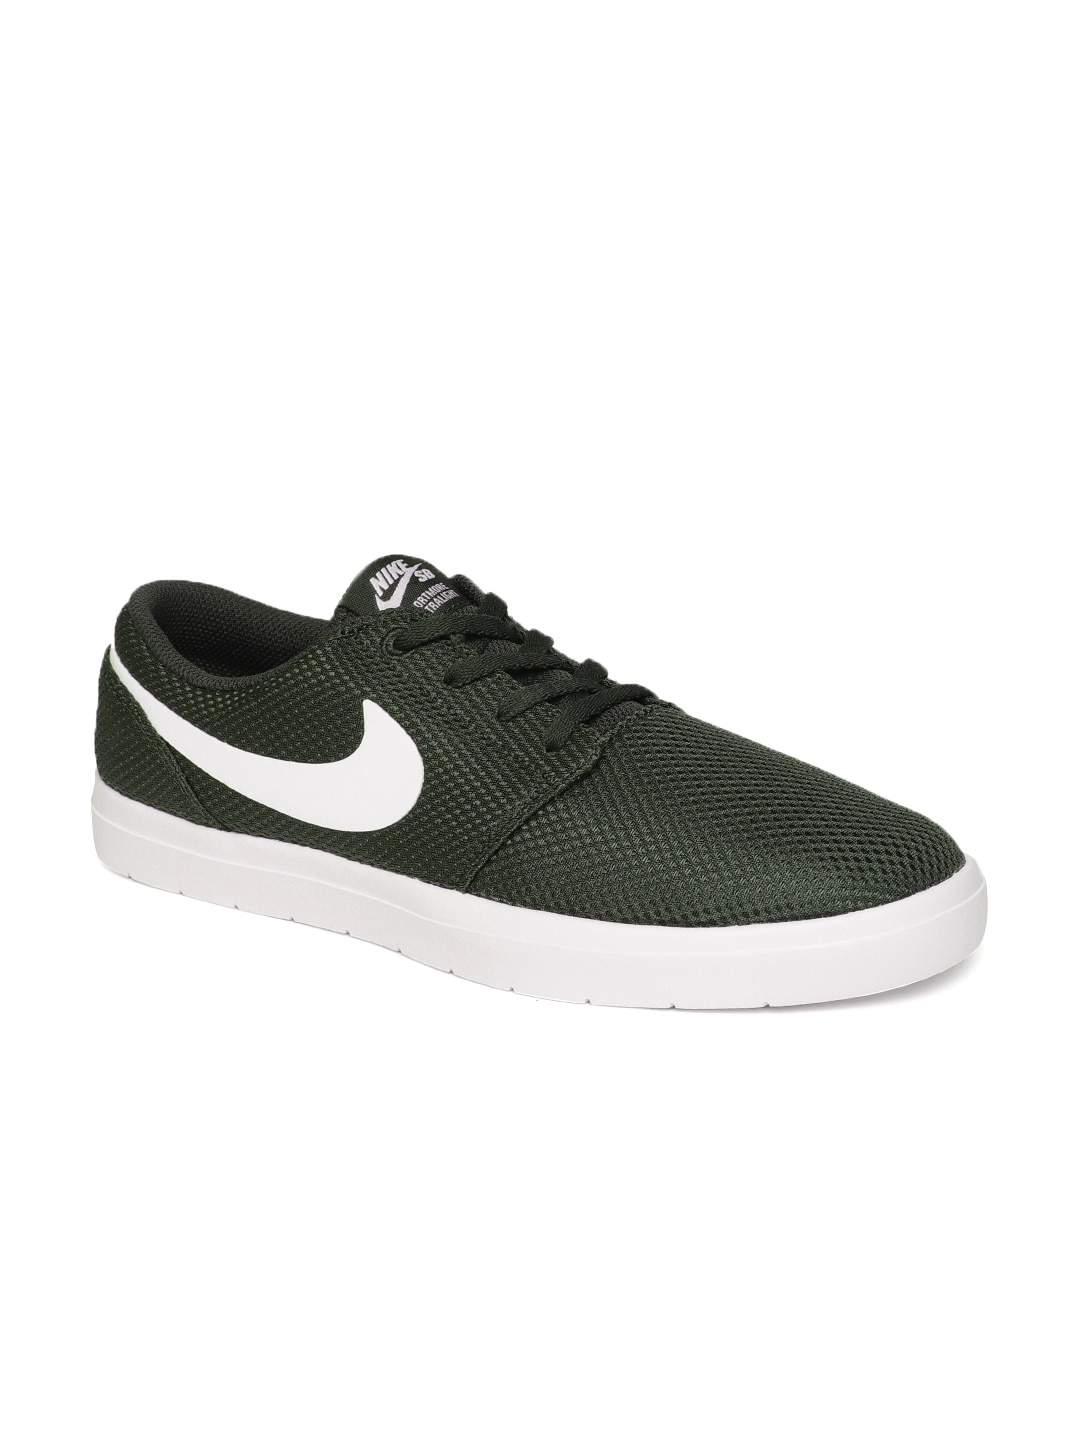 6cf0b6eed4a46 Nike Sb Shoes - Buy Nike Sb Shoes online in India